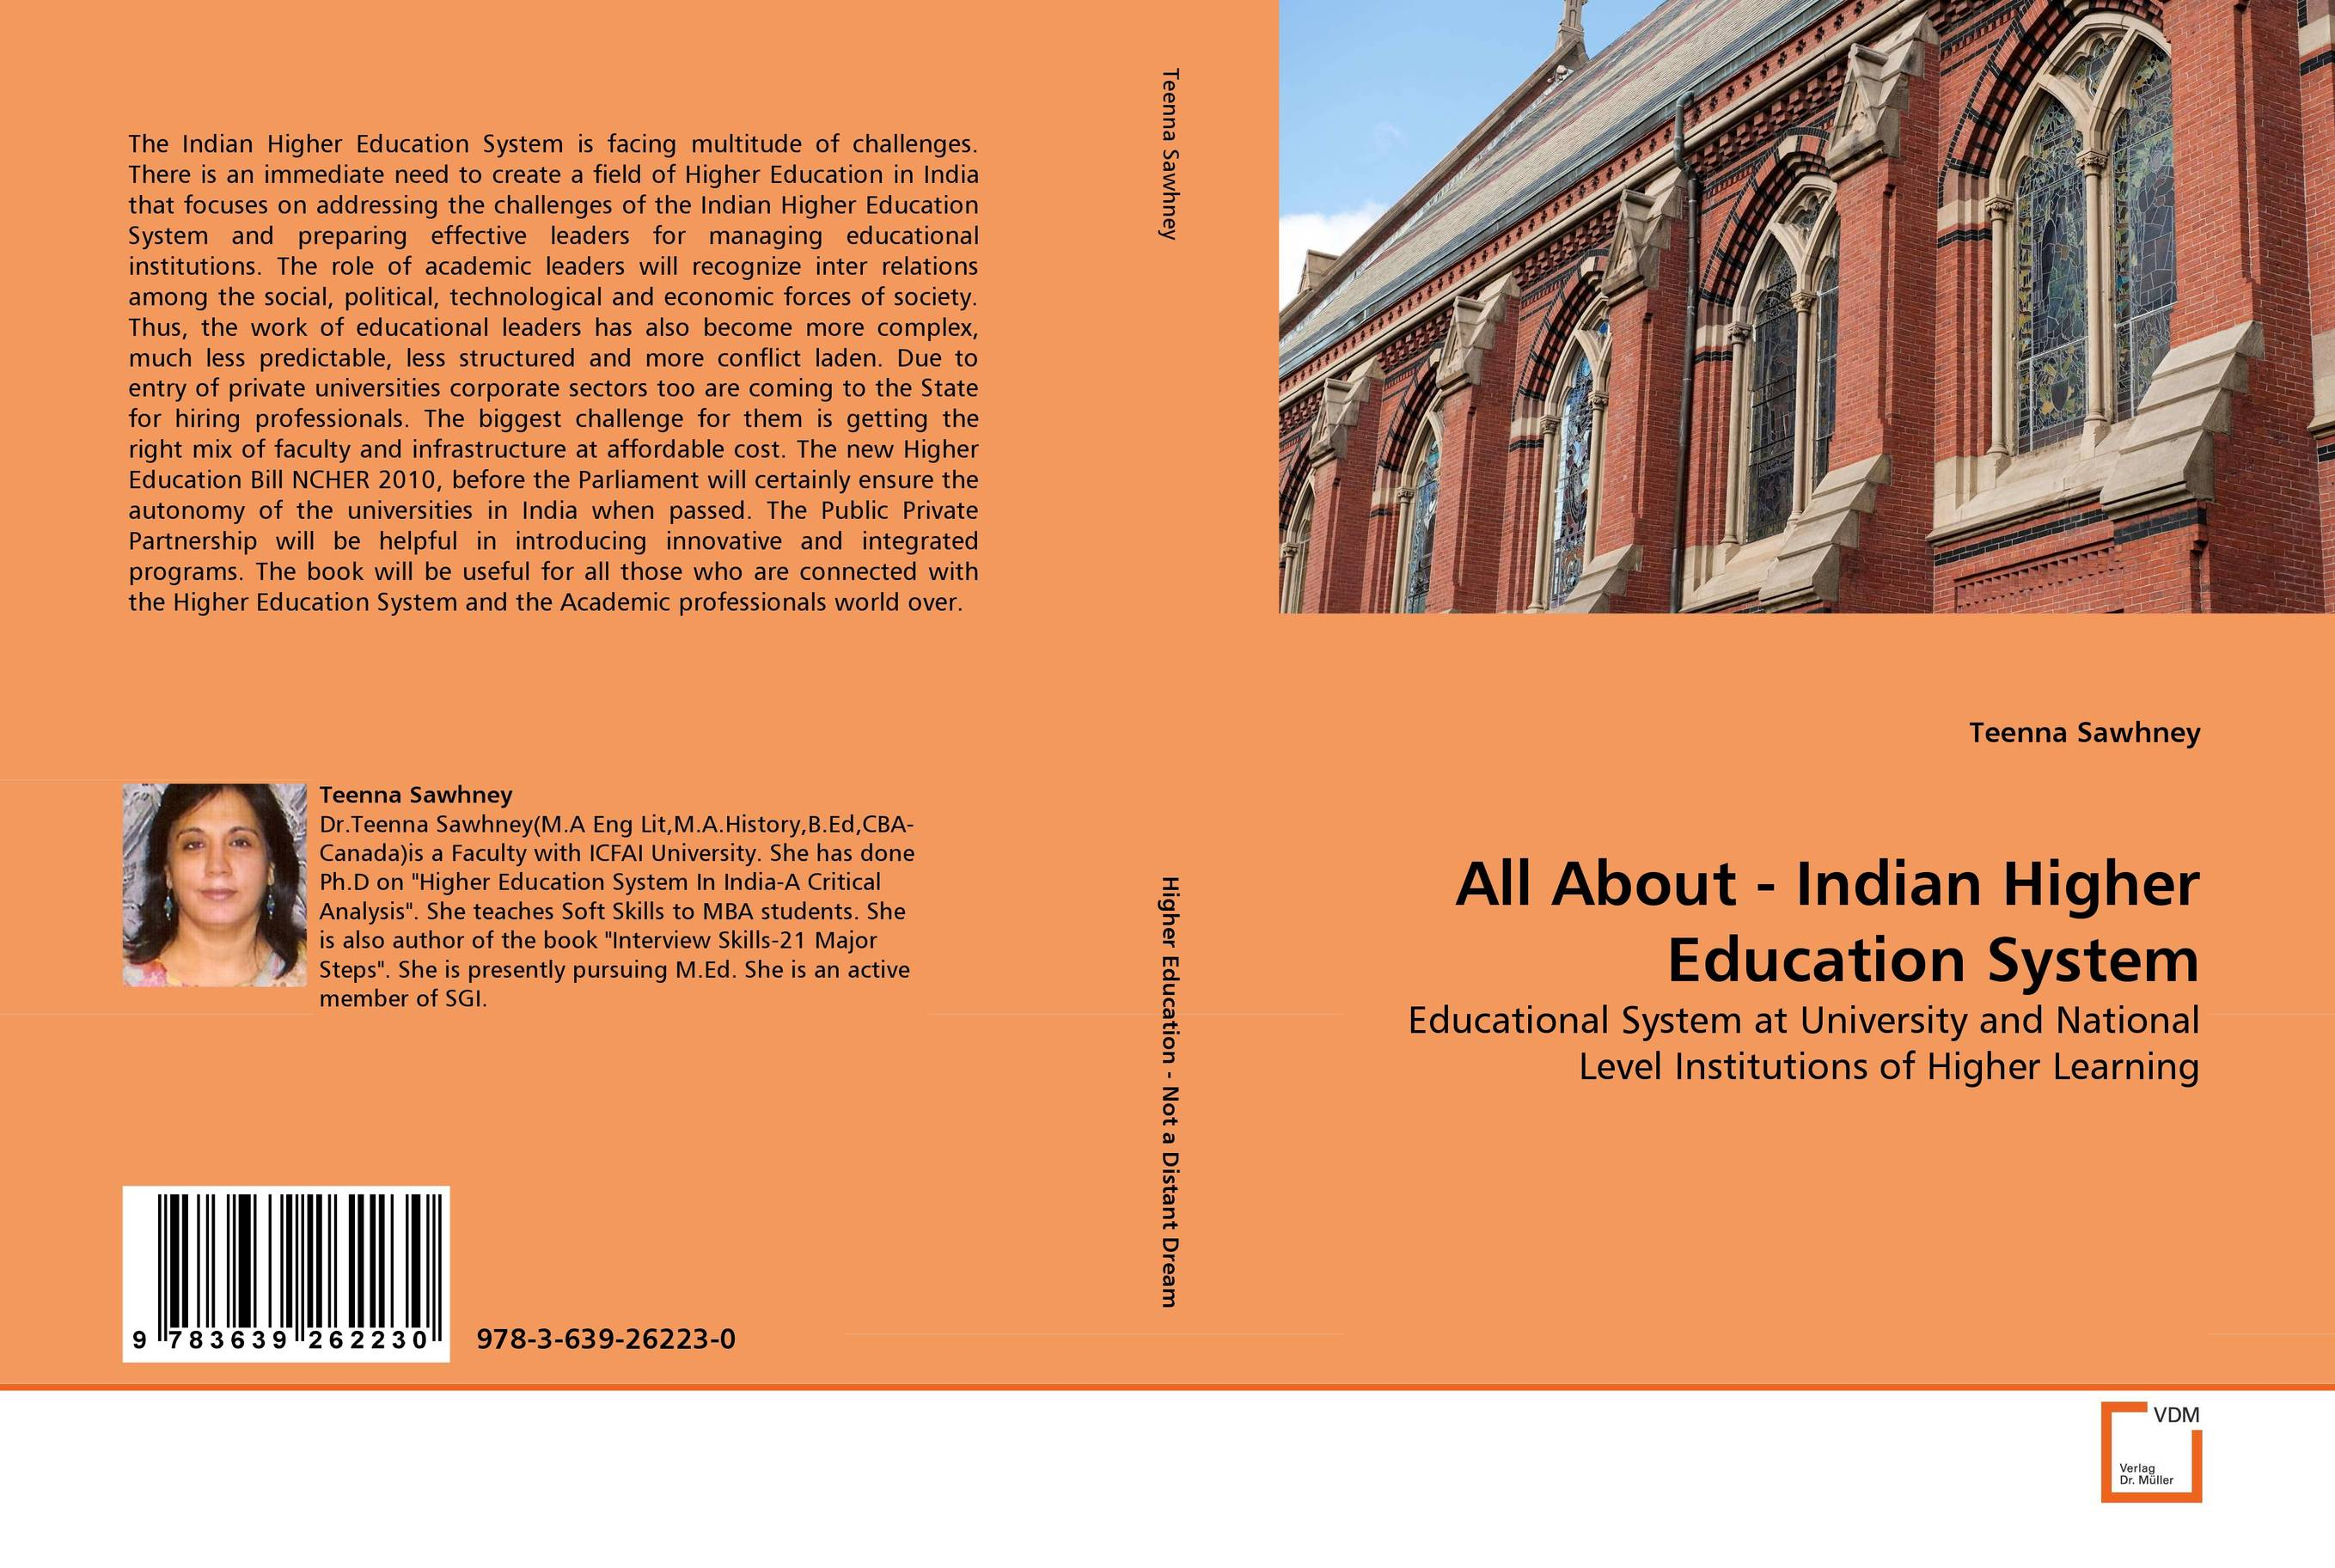 All About - Indian Higher Education System